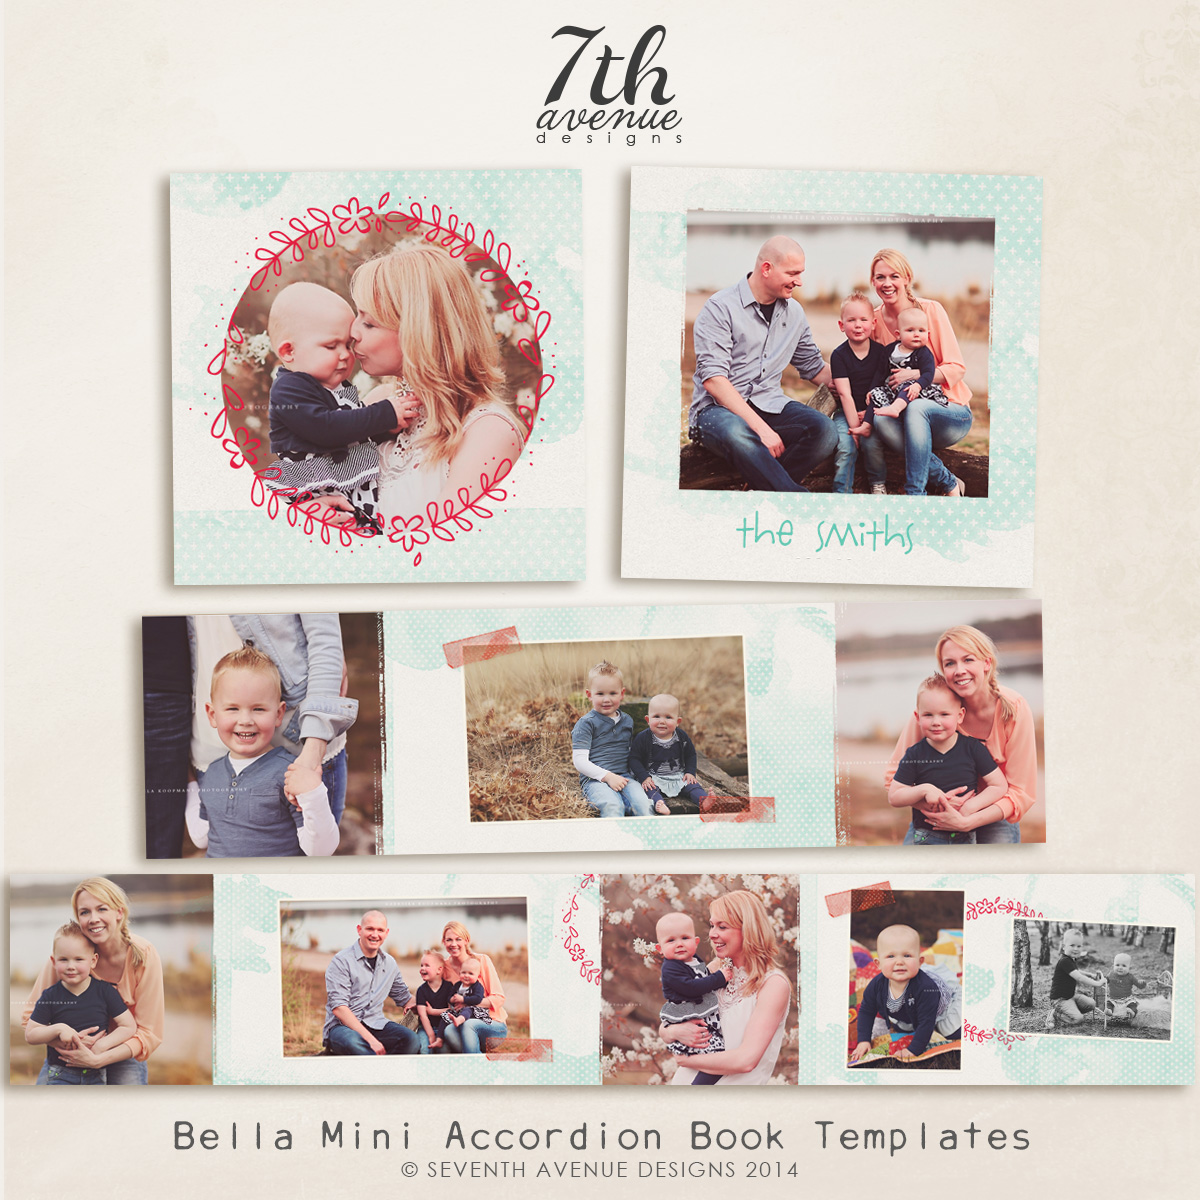 Bella 3x3 Accordion book templates